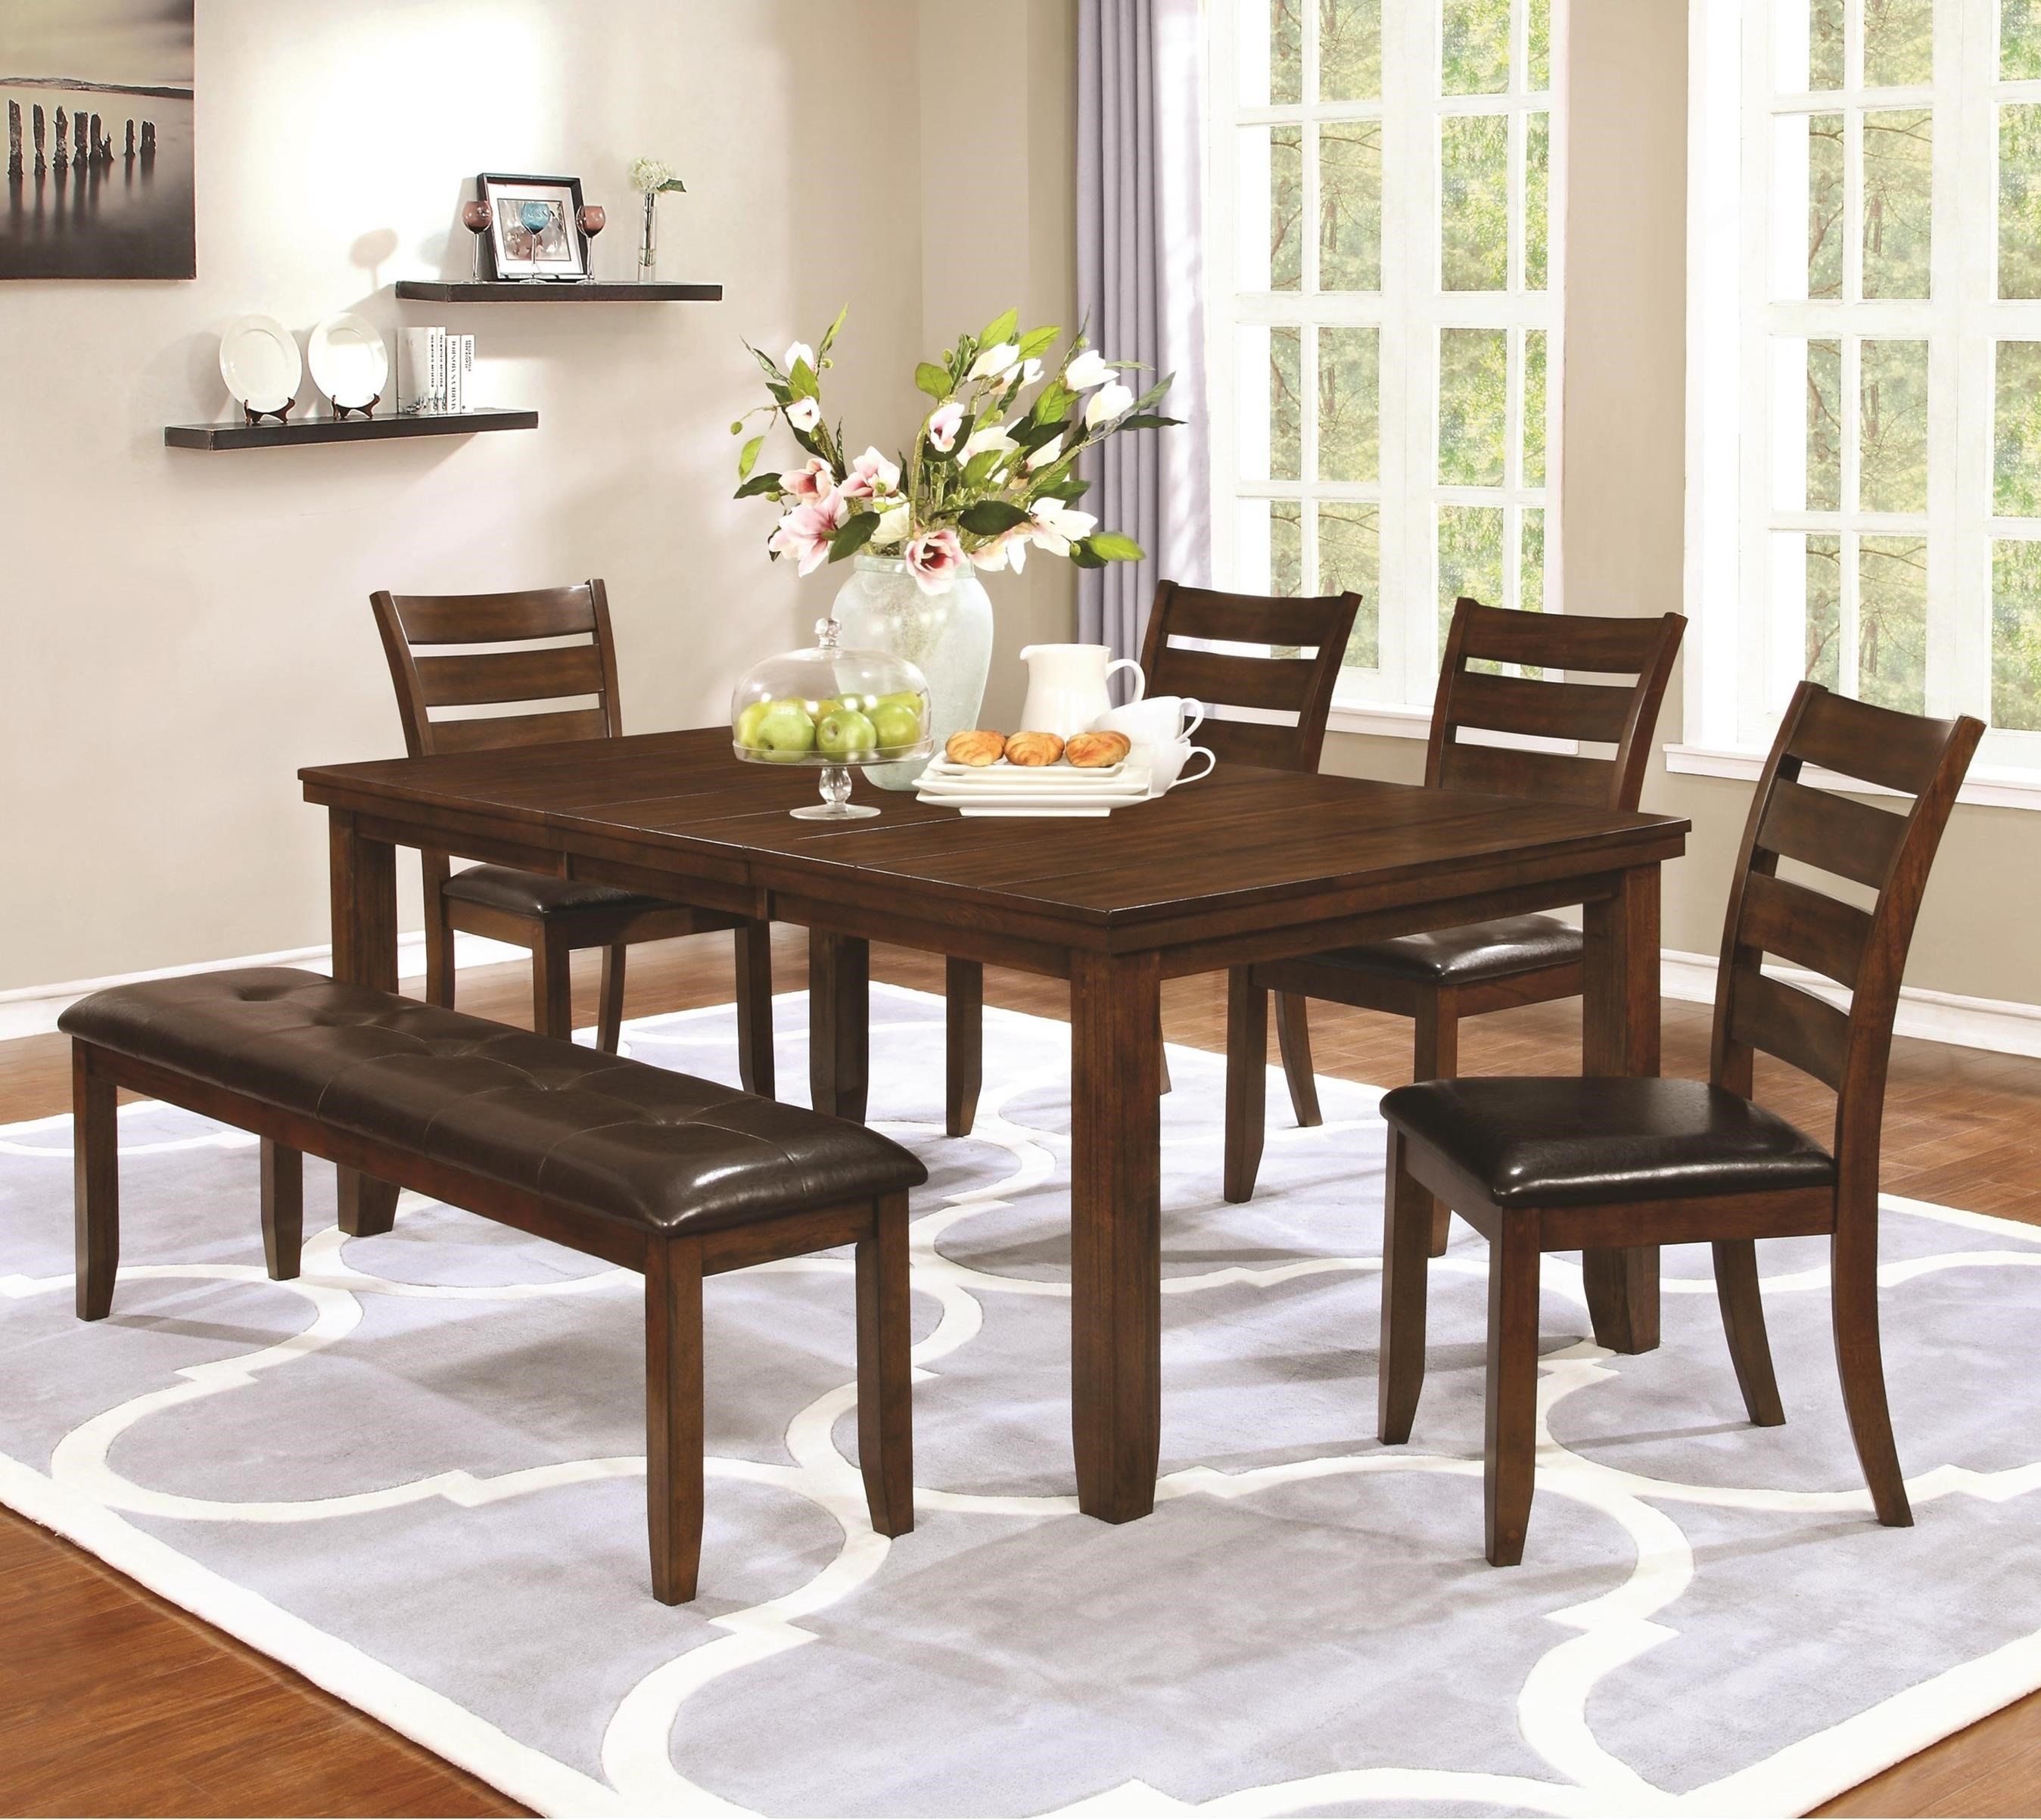 dining table chair set with bench value city furniture table